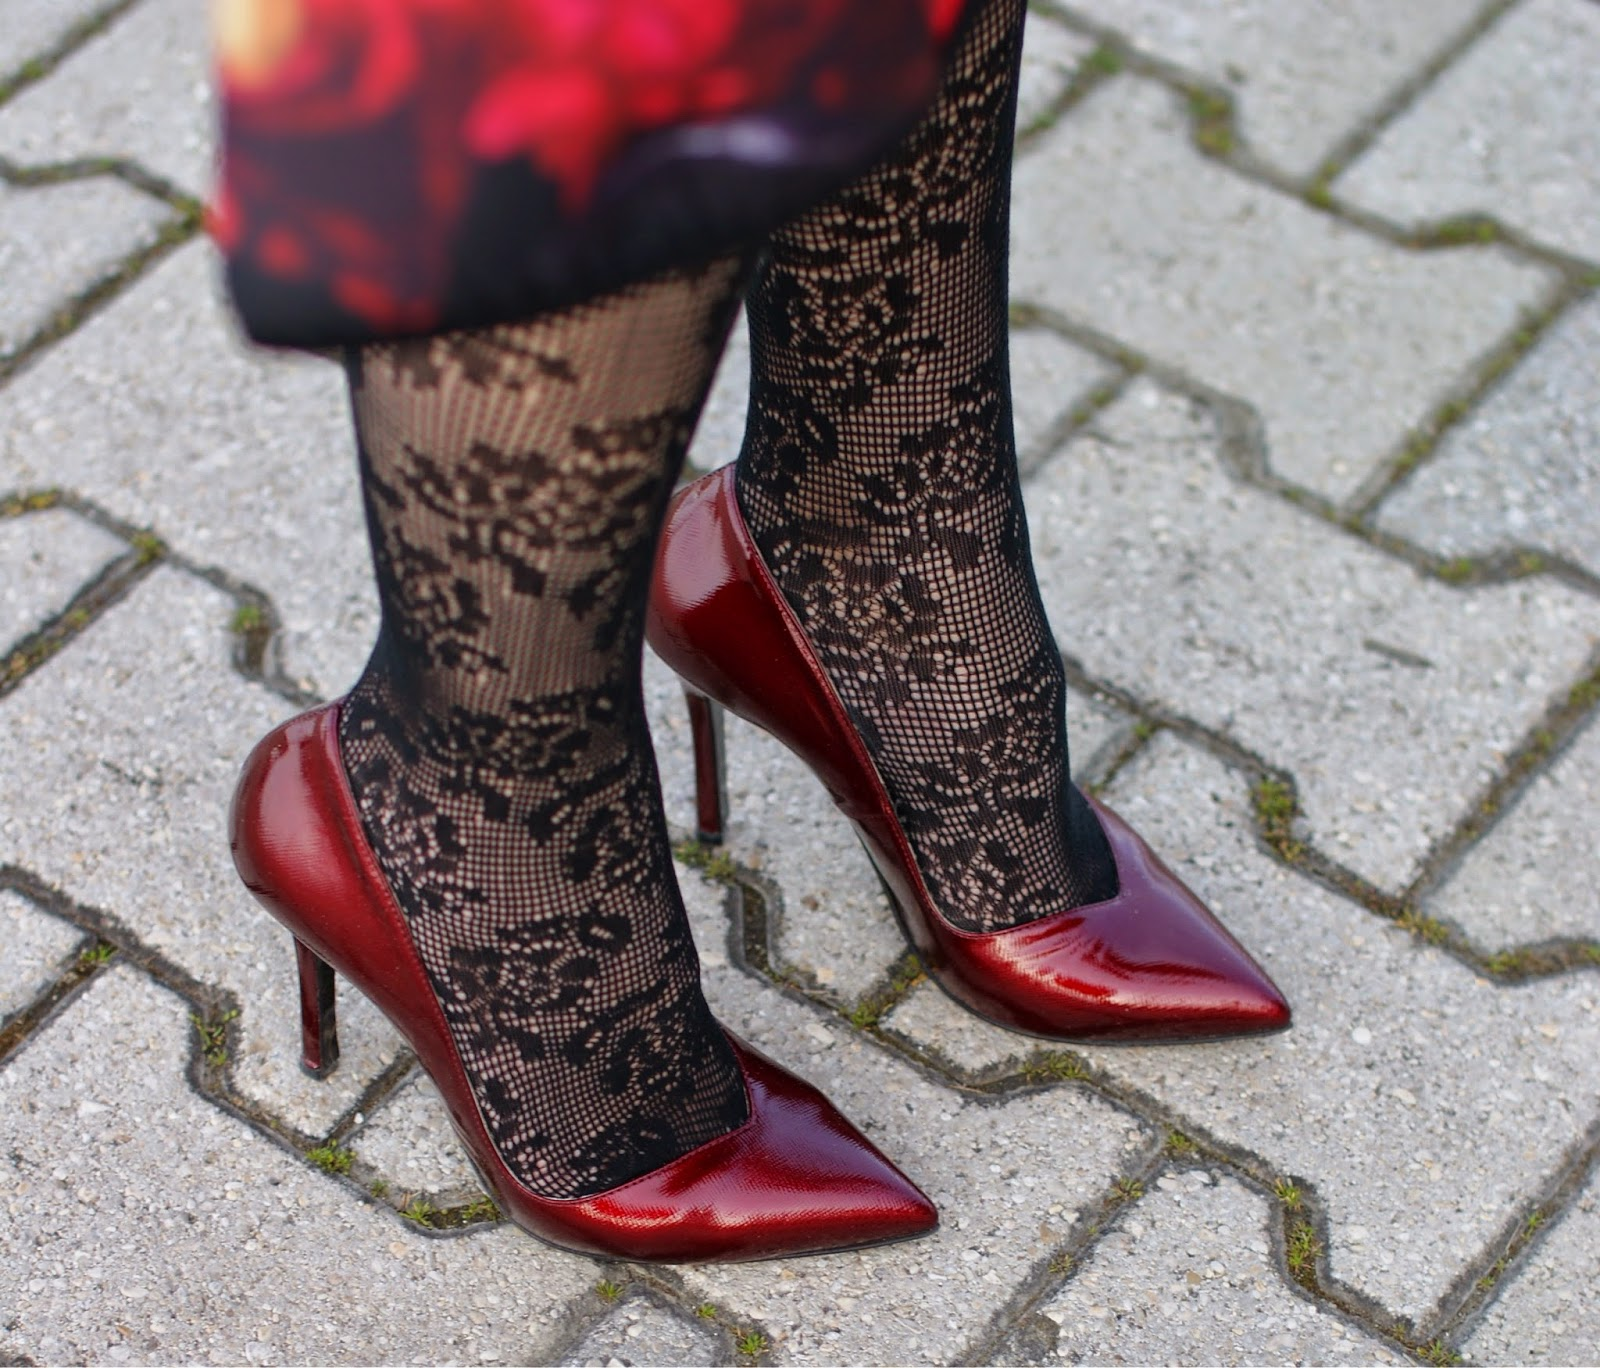 Gaia d'Este red pumps, Calzedonia crochet tights, Fashion and Cookies, fashion blogger